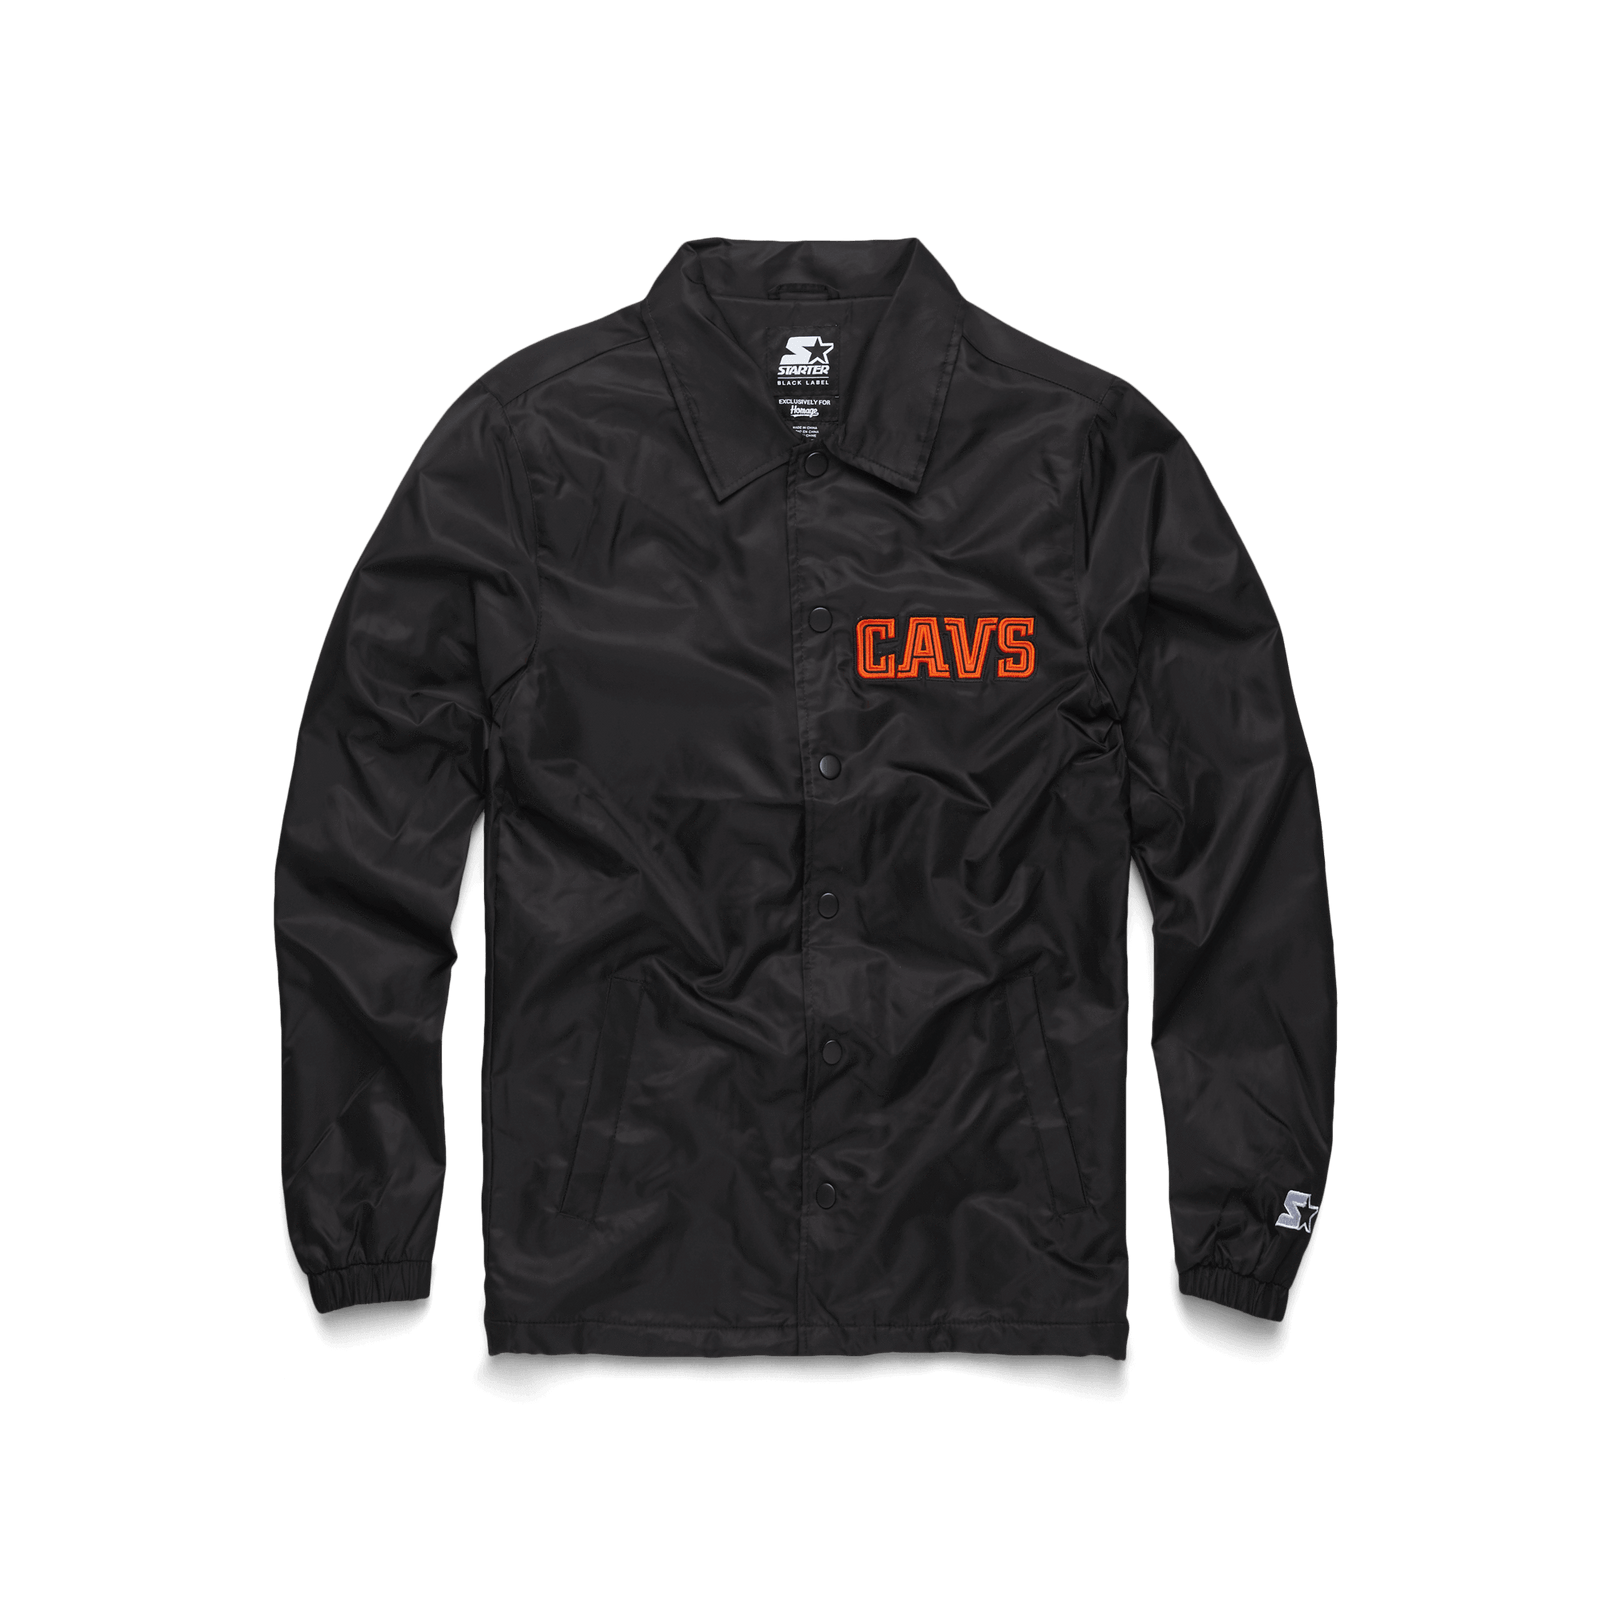 HOMAGE X Starter Cleveland Cavaliers Jacket